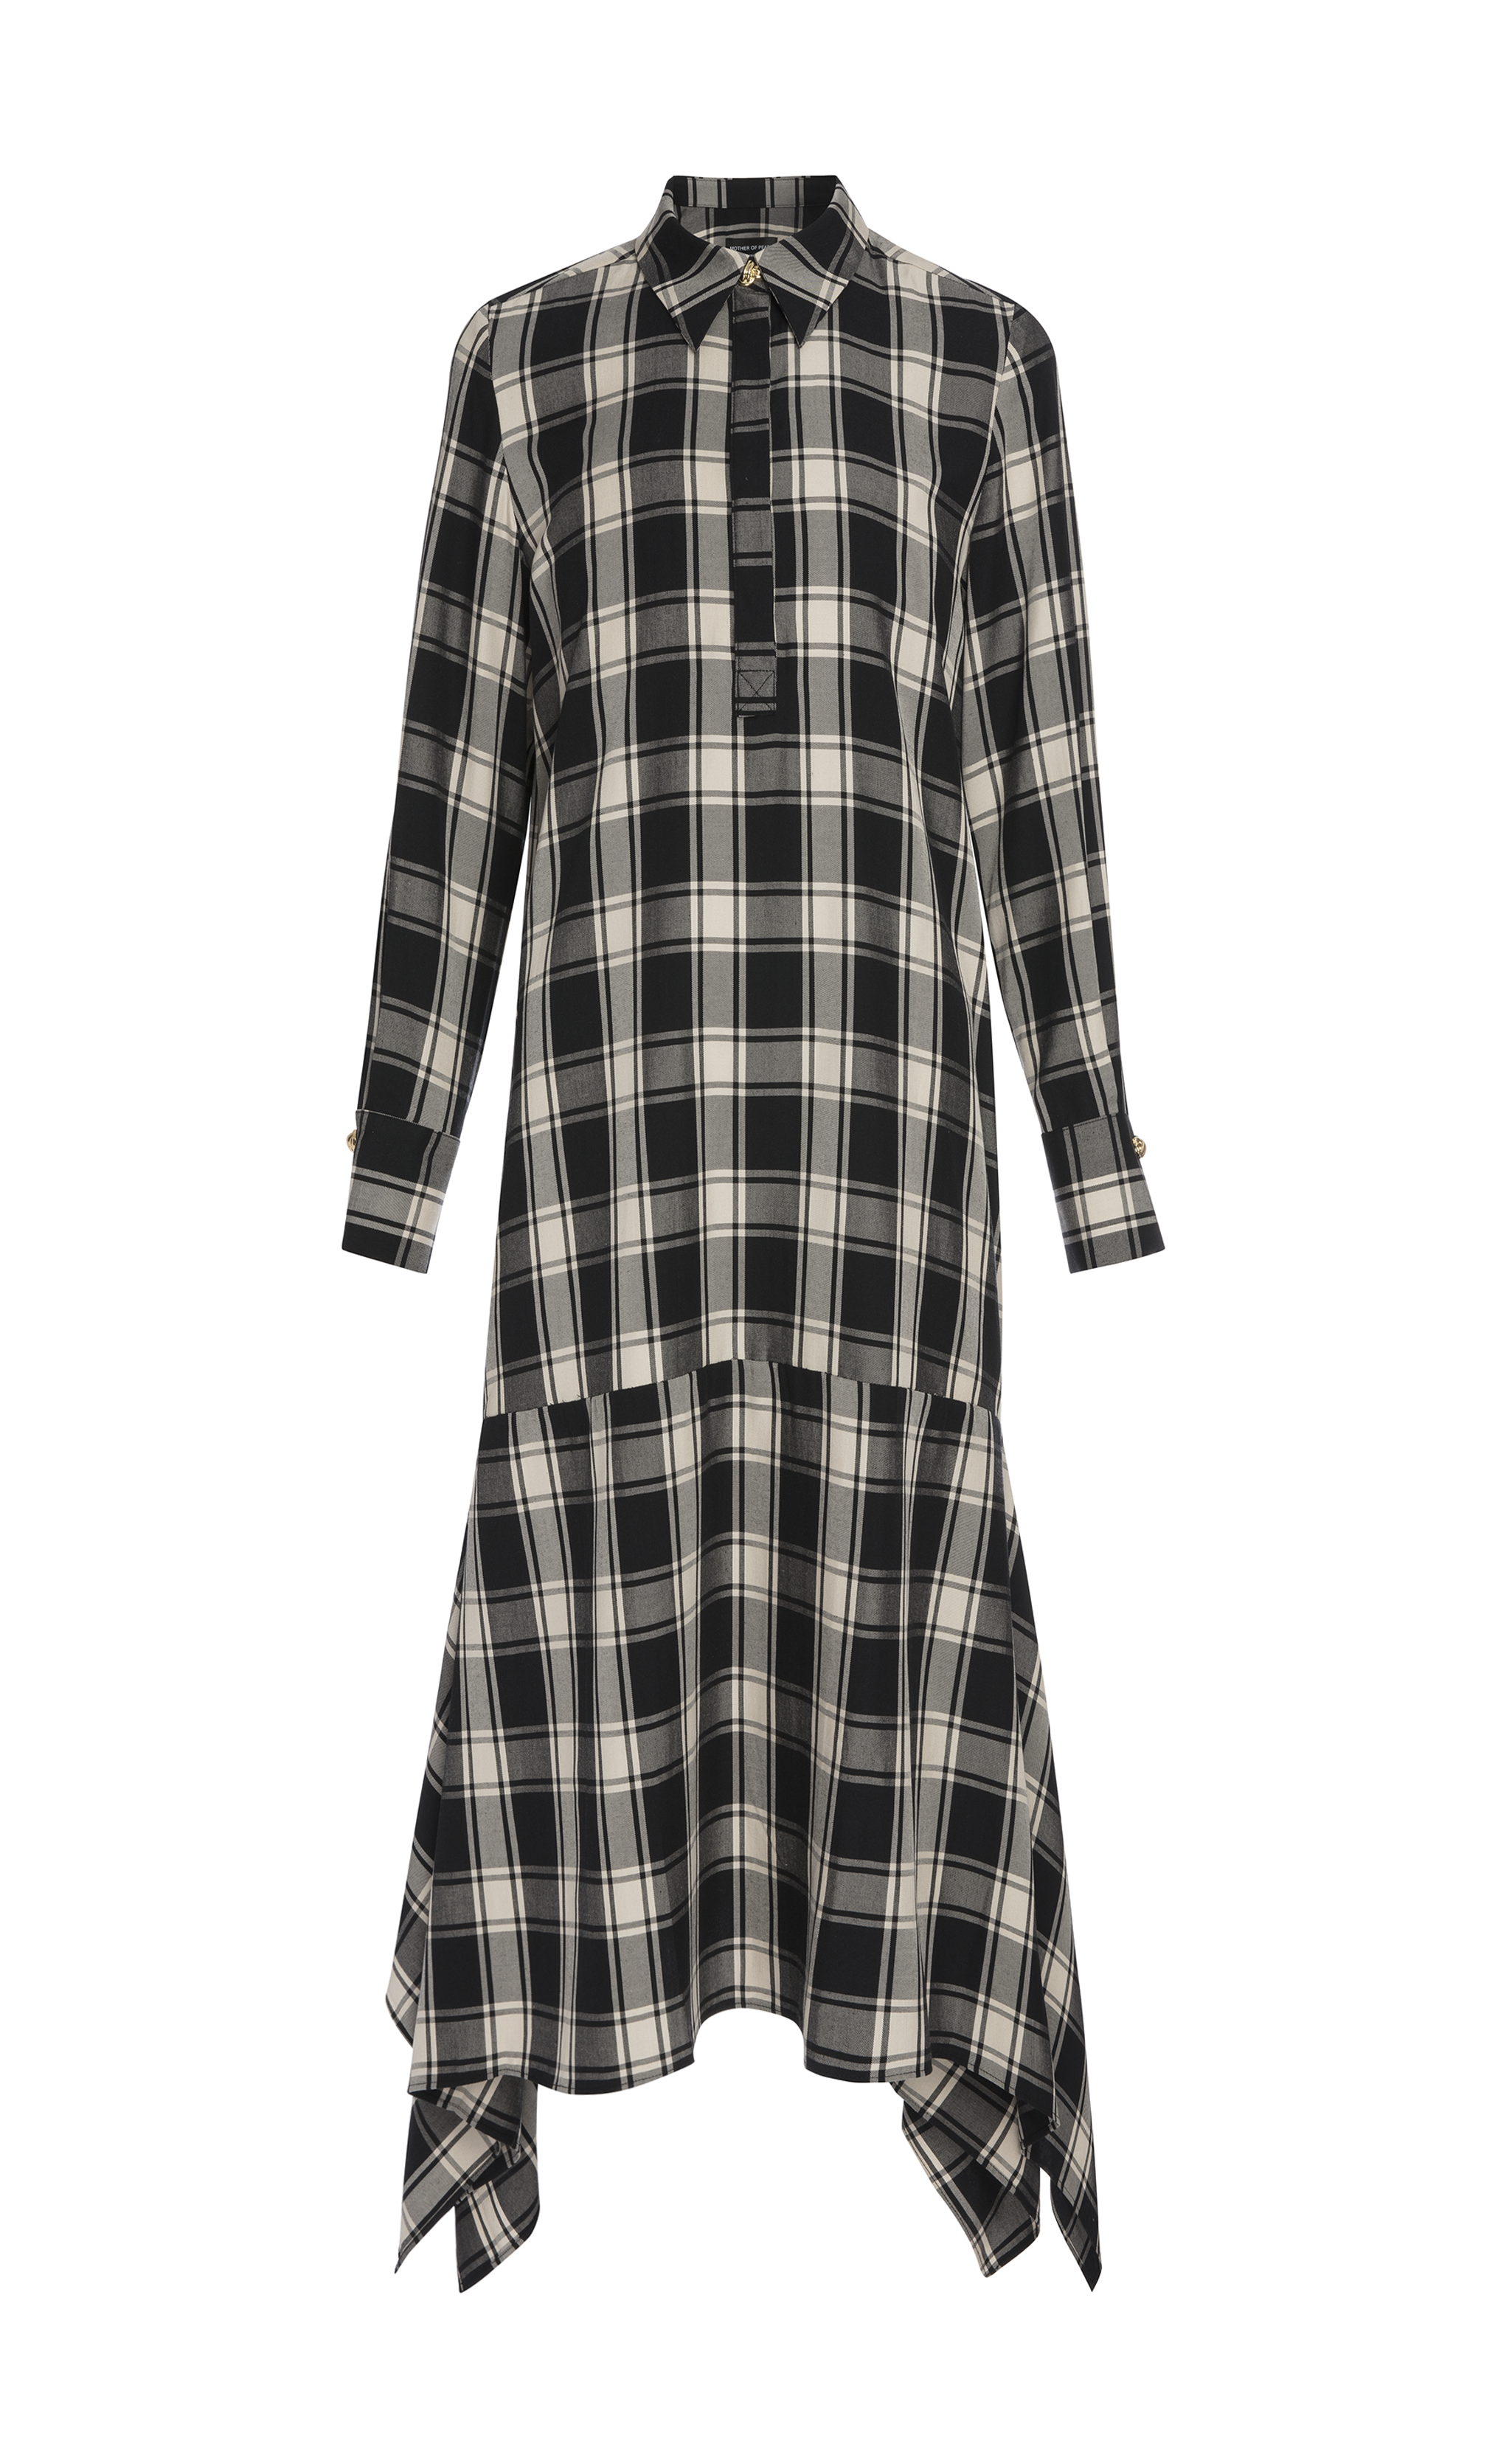 WHITNEY CHECK DRESS